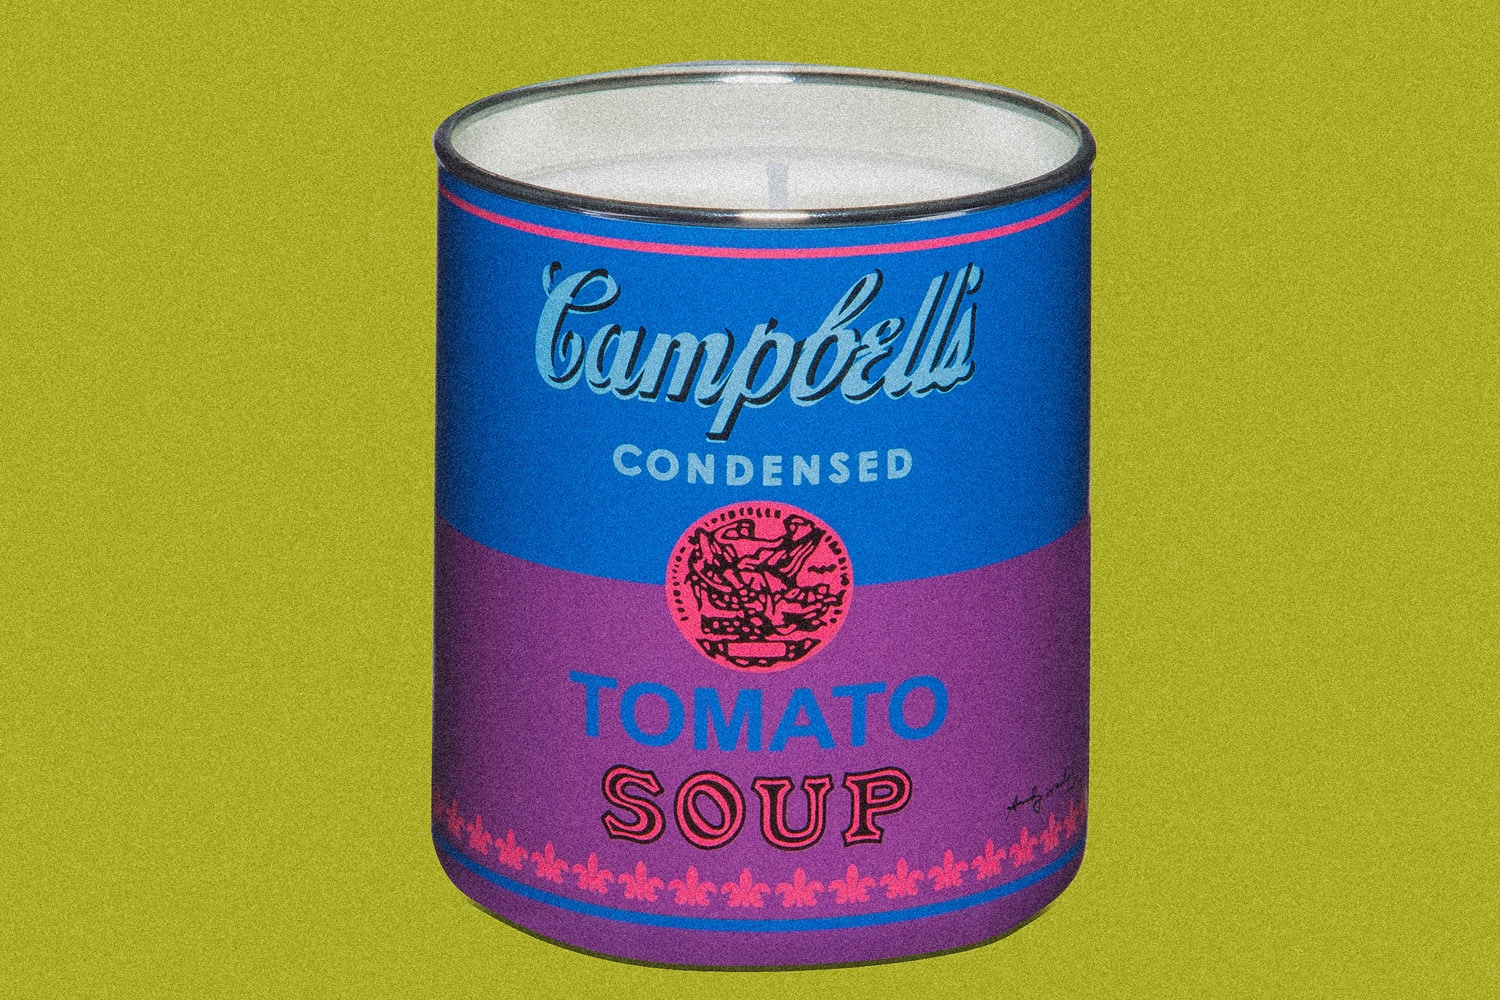 http_bae-hypebeast-comfiles201712ligne-blanche-andy-warhol-keith-haring-jean-michel-basquiat-candle-2